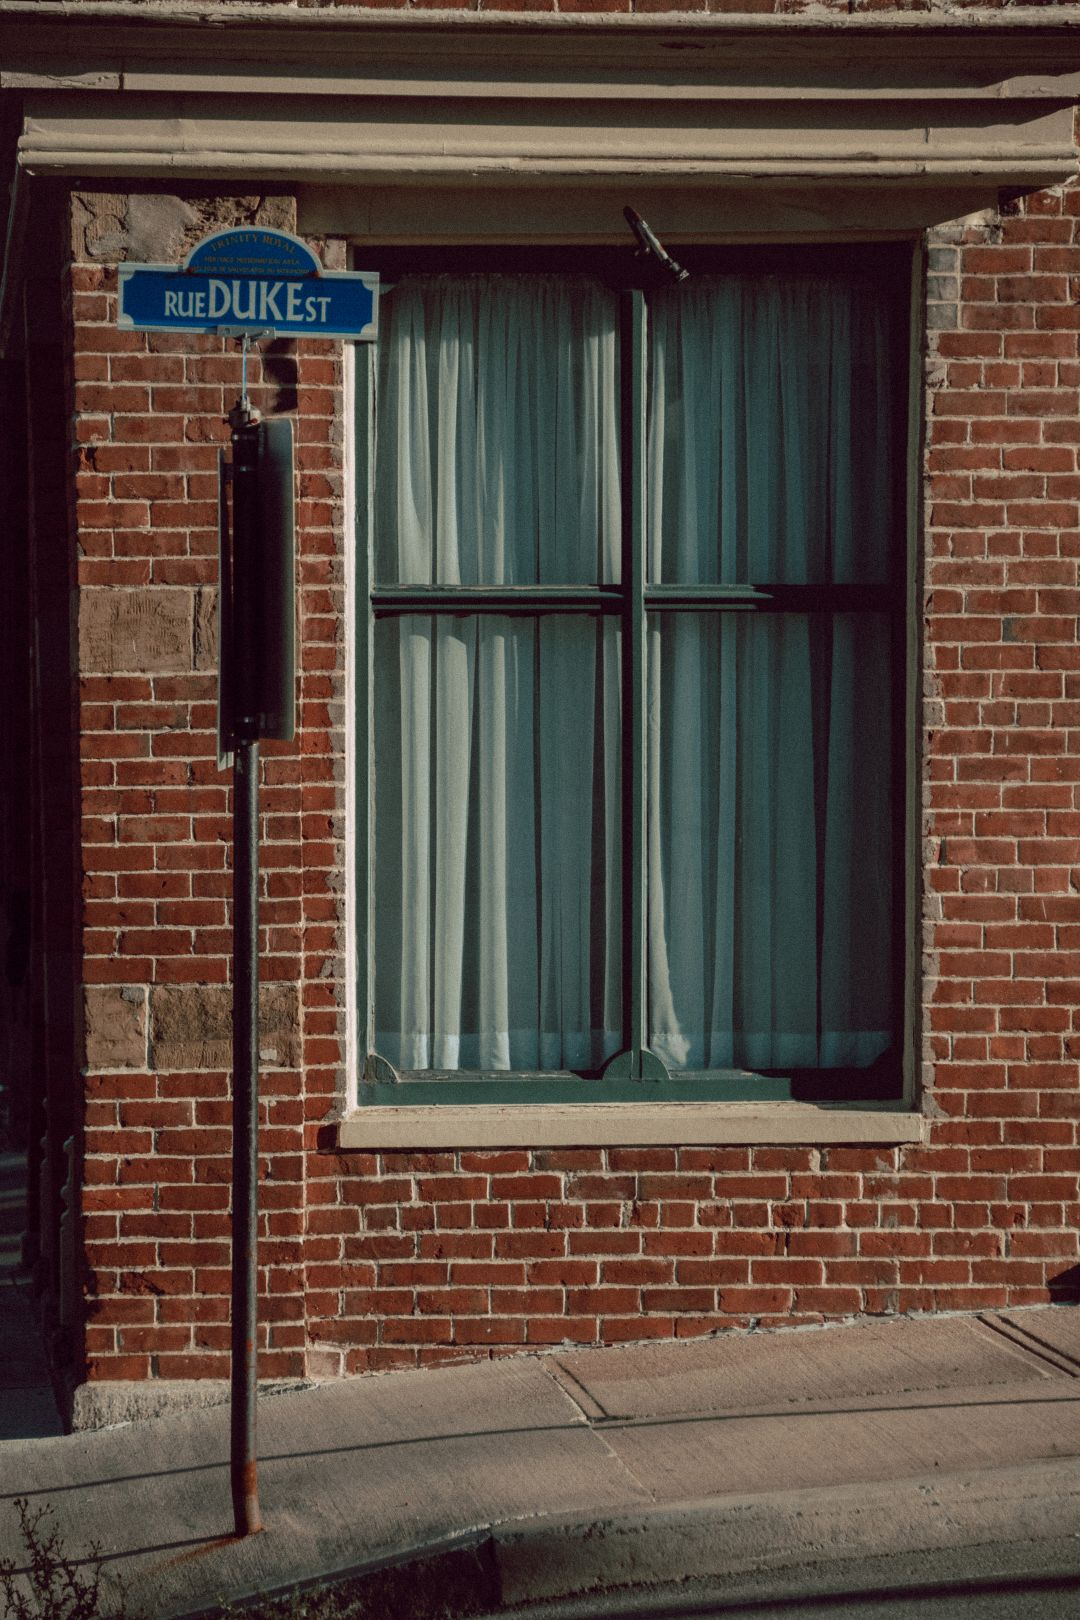 A photo depicting Duke Street Sign Vertical